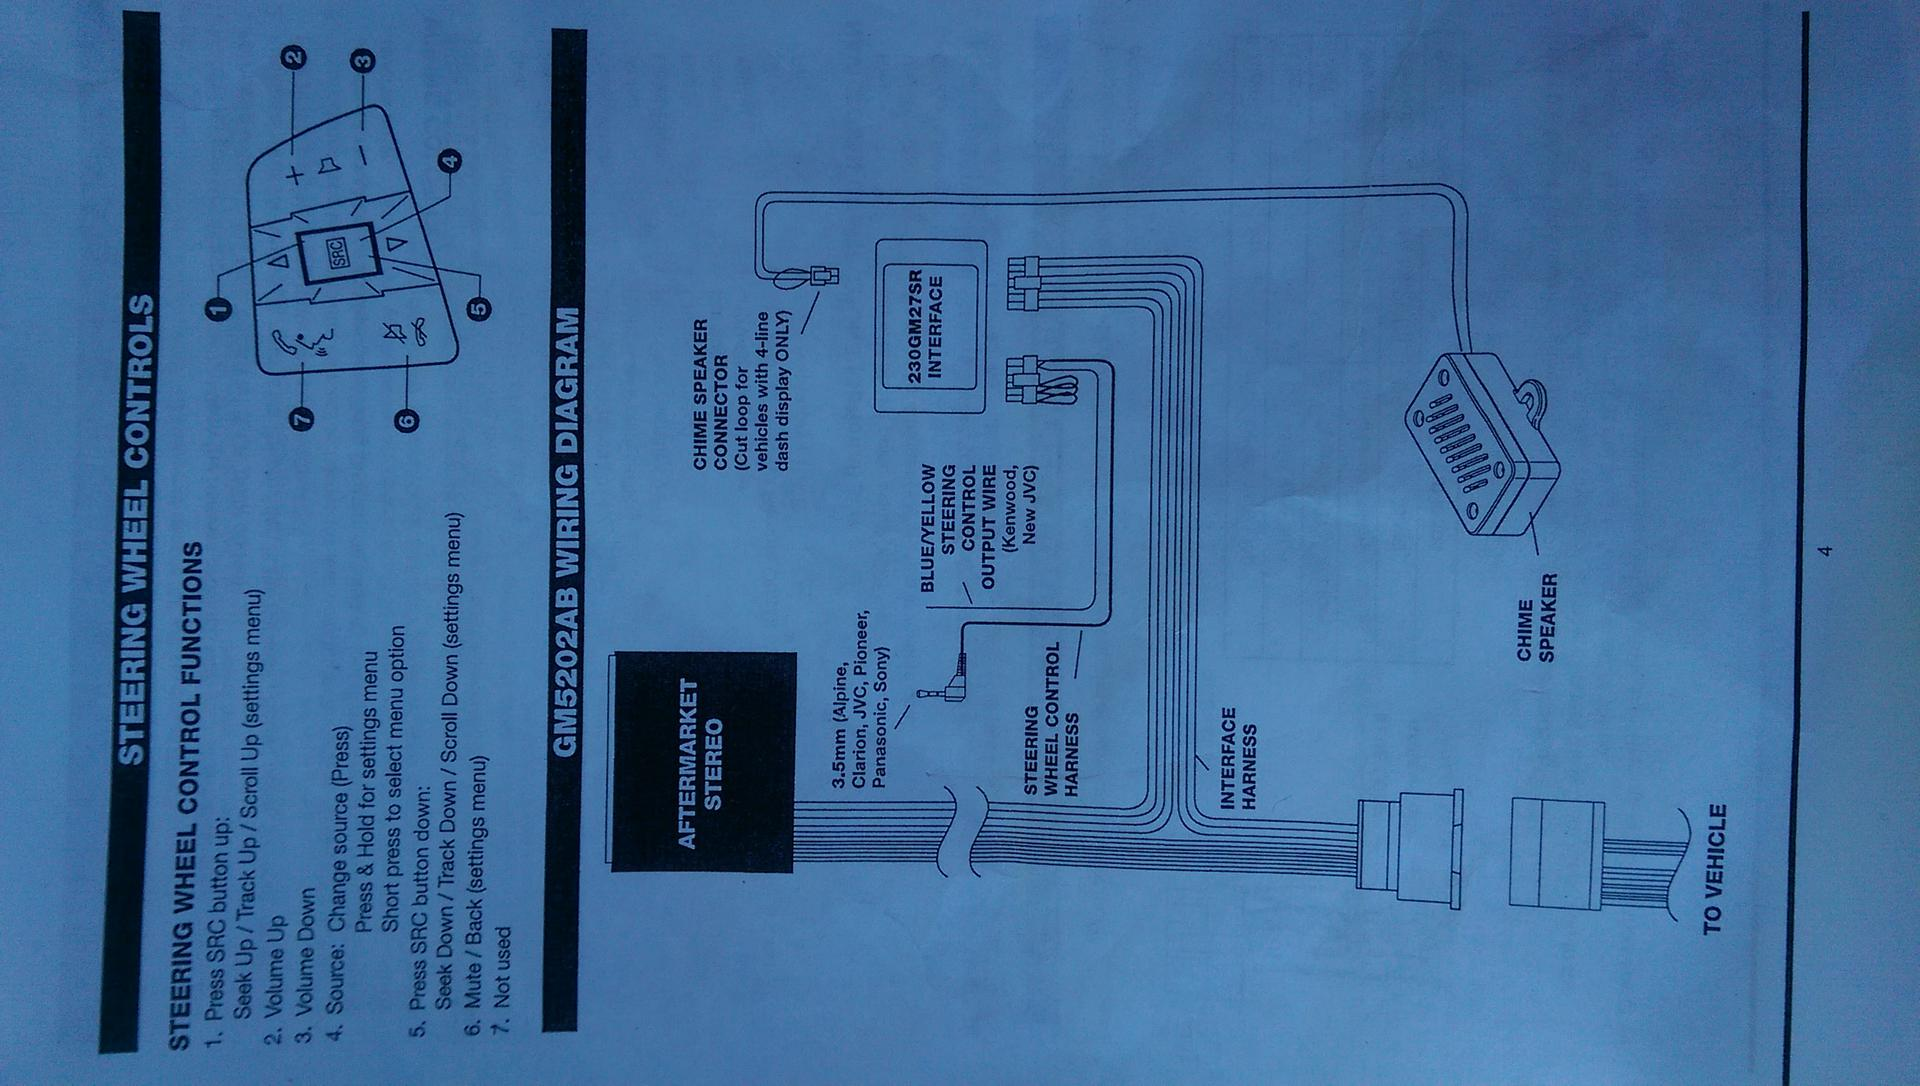 help gm5202ab wiring issues imag0211 jpgthis is the wiring diagram